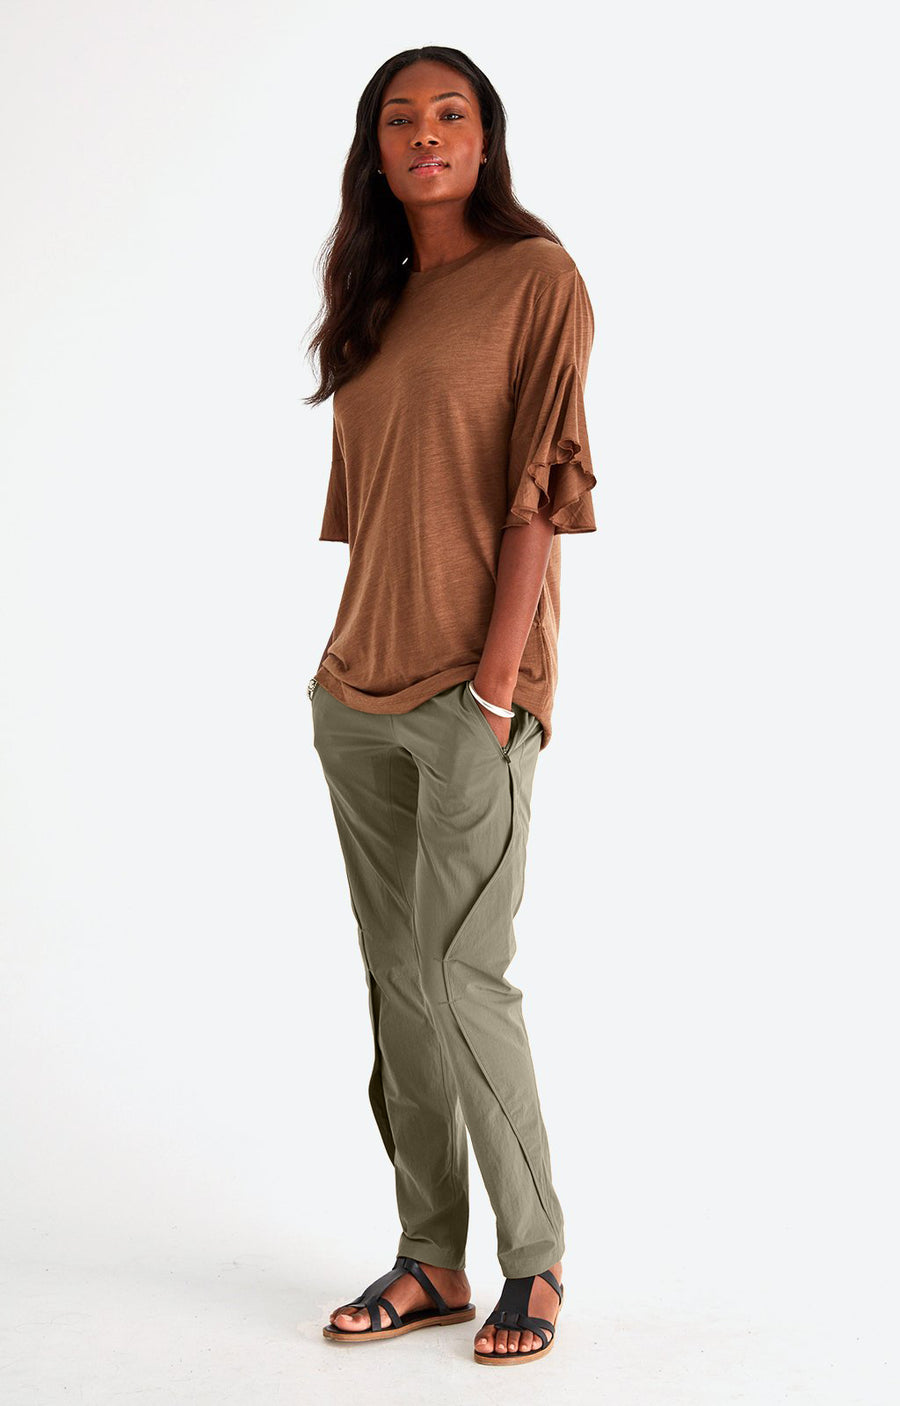 Purity - Meticulous Craftsmanship, Travel Pants in Khaki